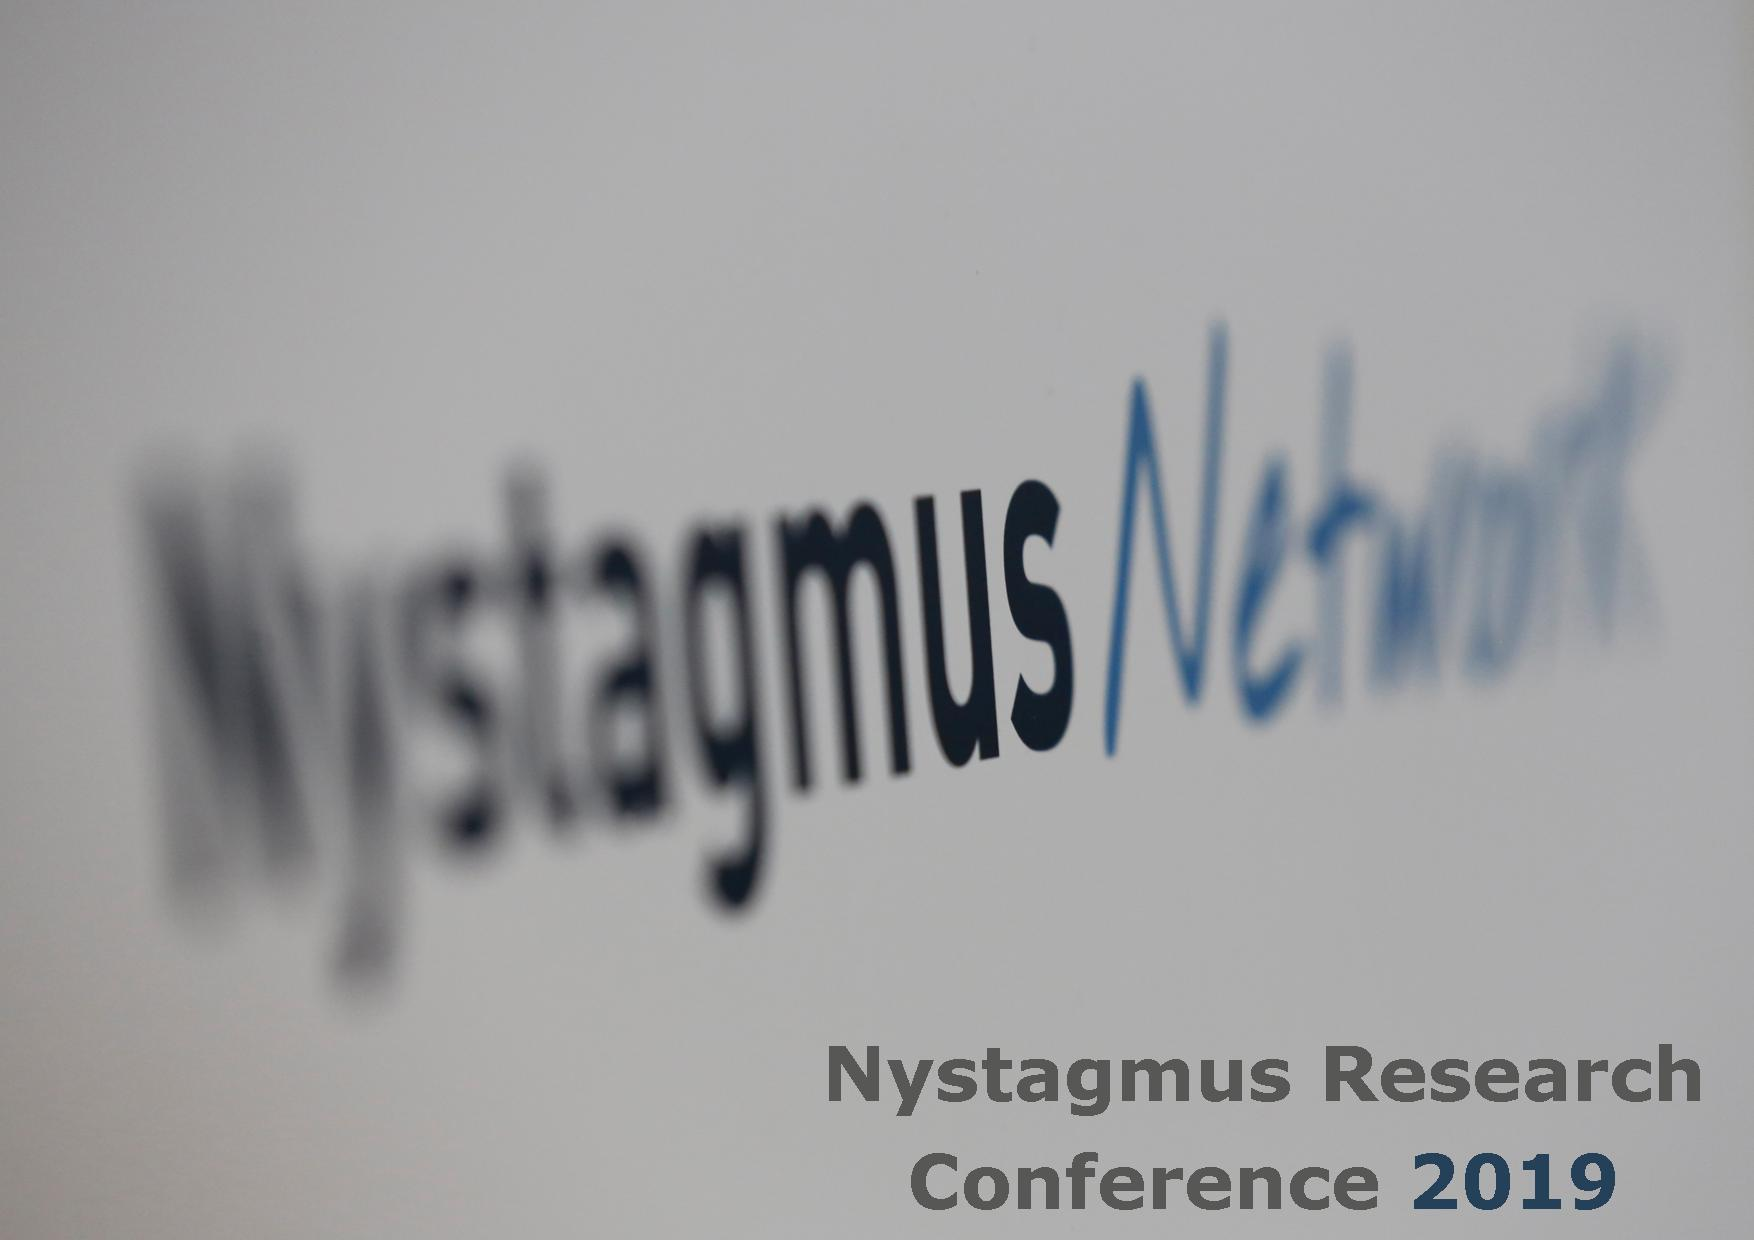 UK Nystagmus Research Workshop